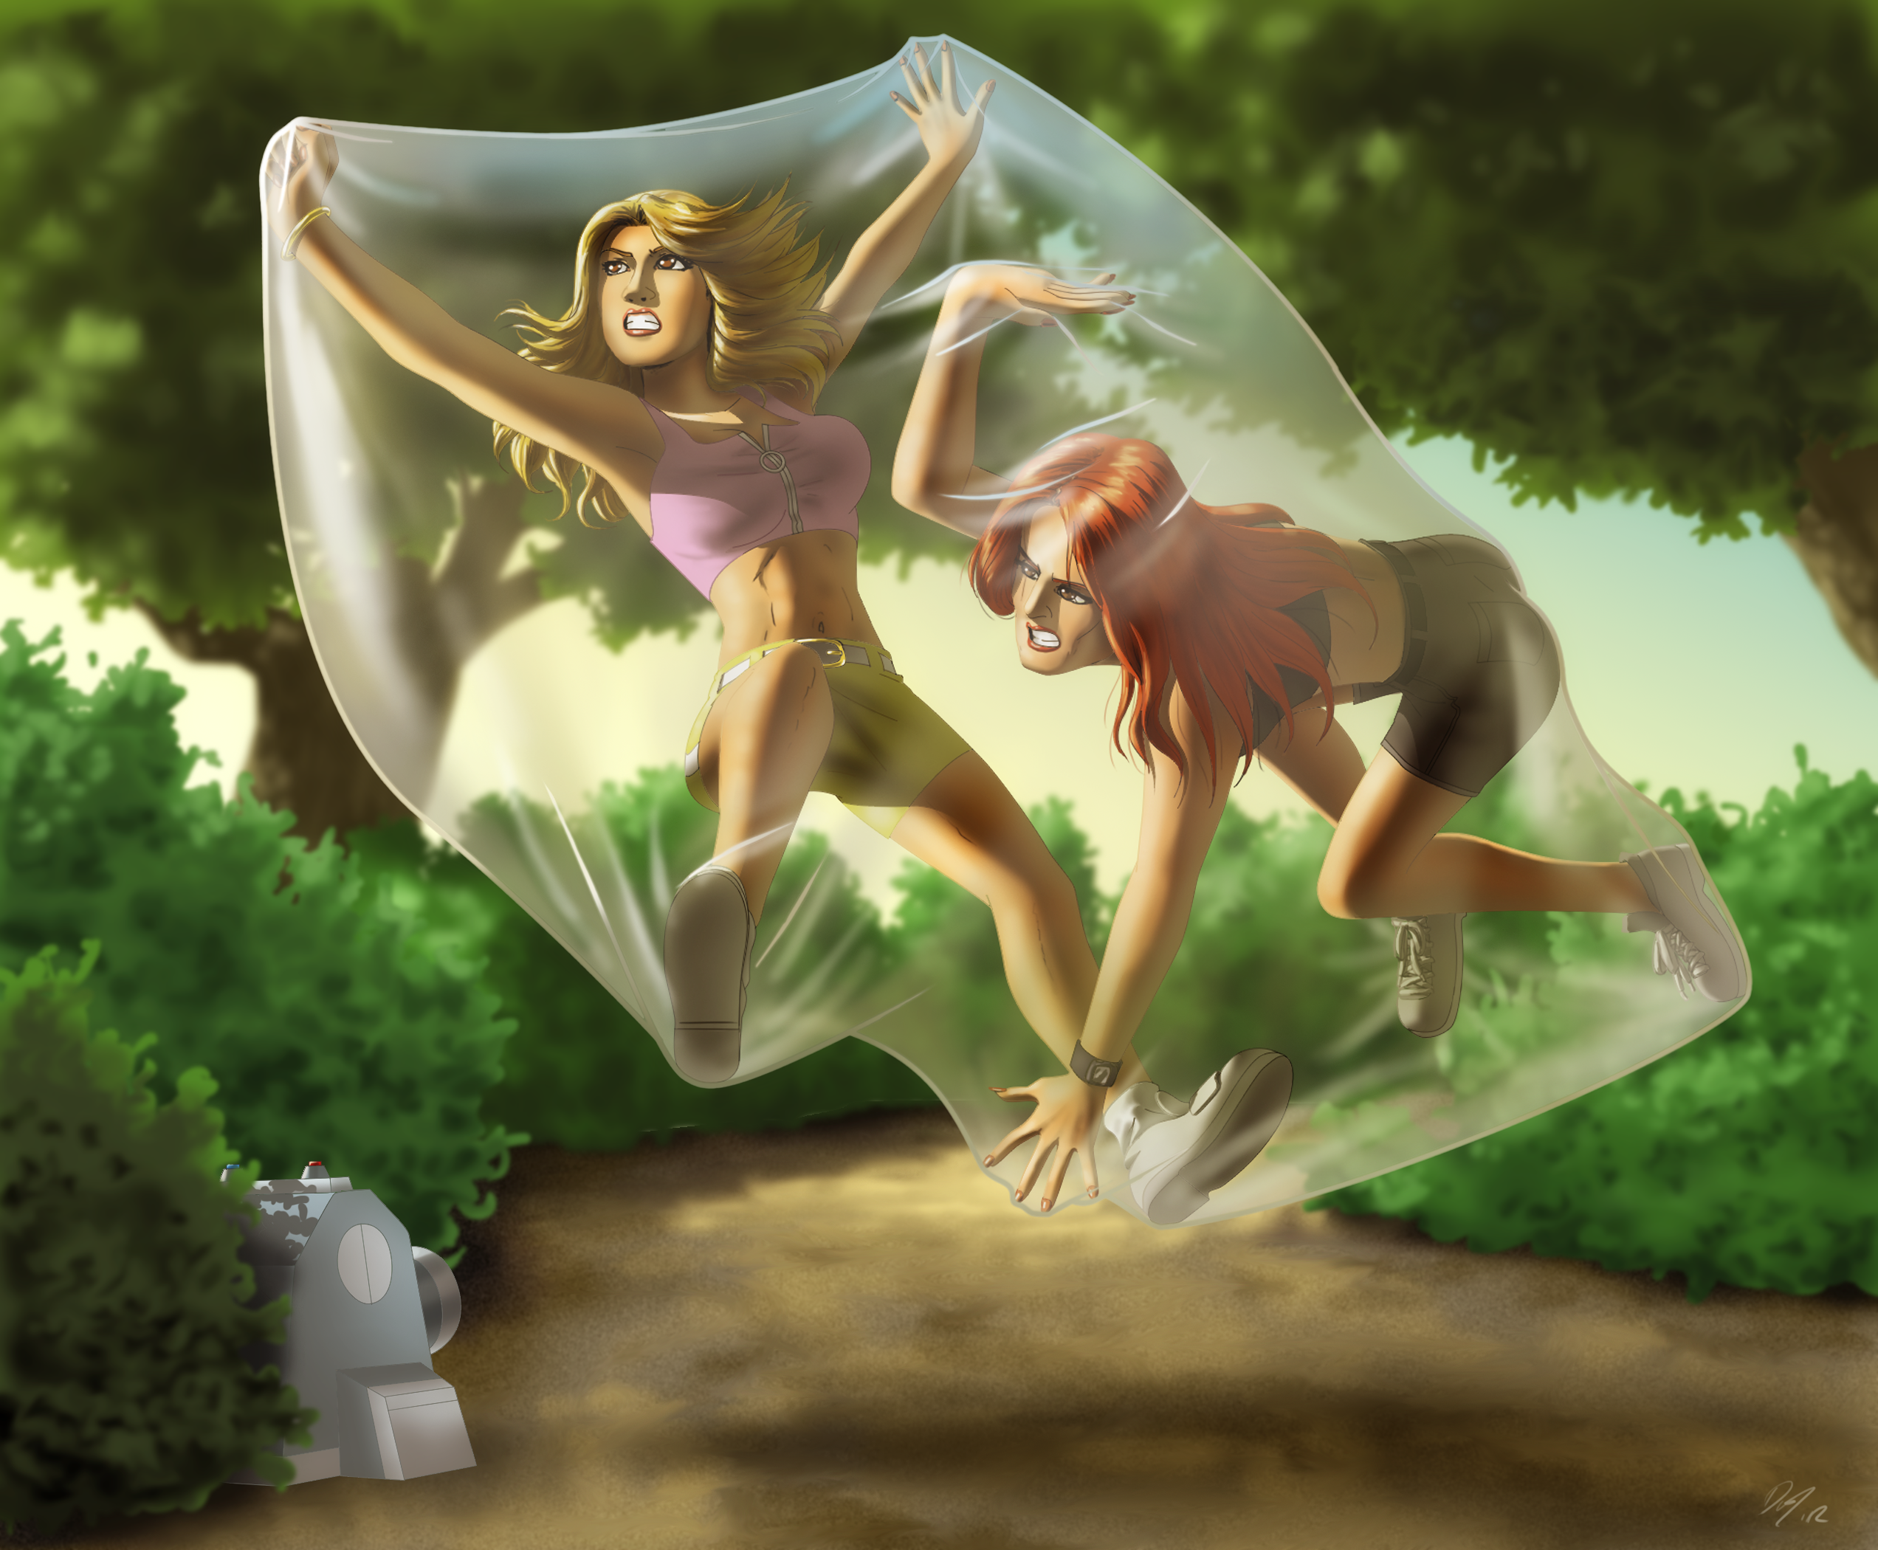 A Jog Into Bubble Trouble 2 By EastCoastCanuck On DeviantArt